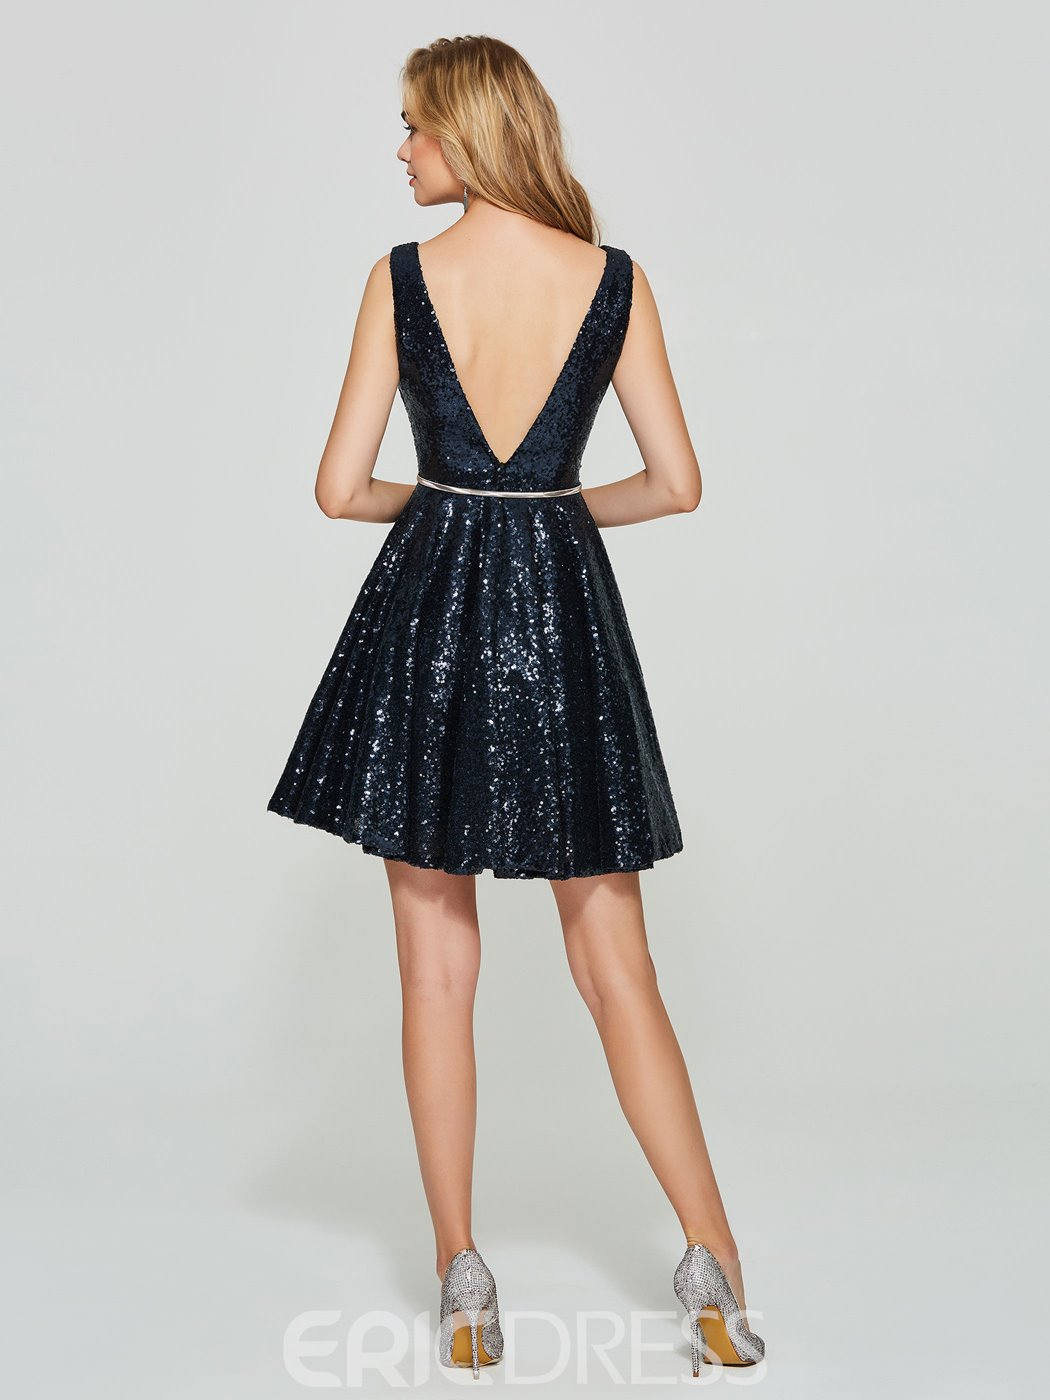 Ericdress Short A Line V Neck Sequin Deep Back Homecoming Dress